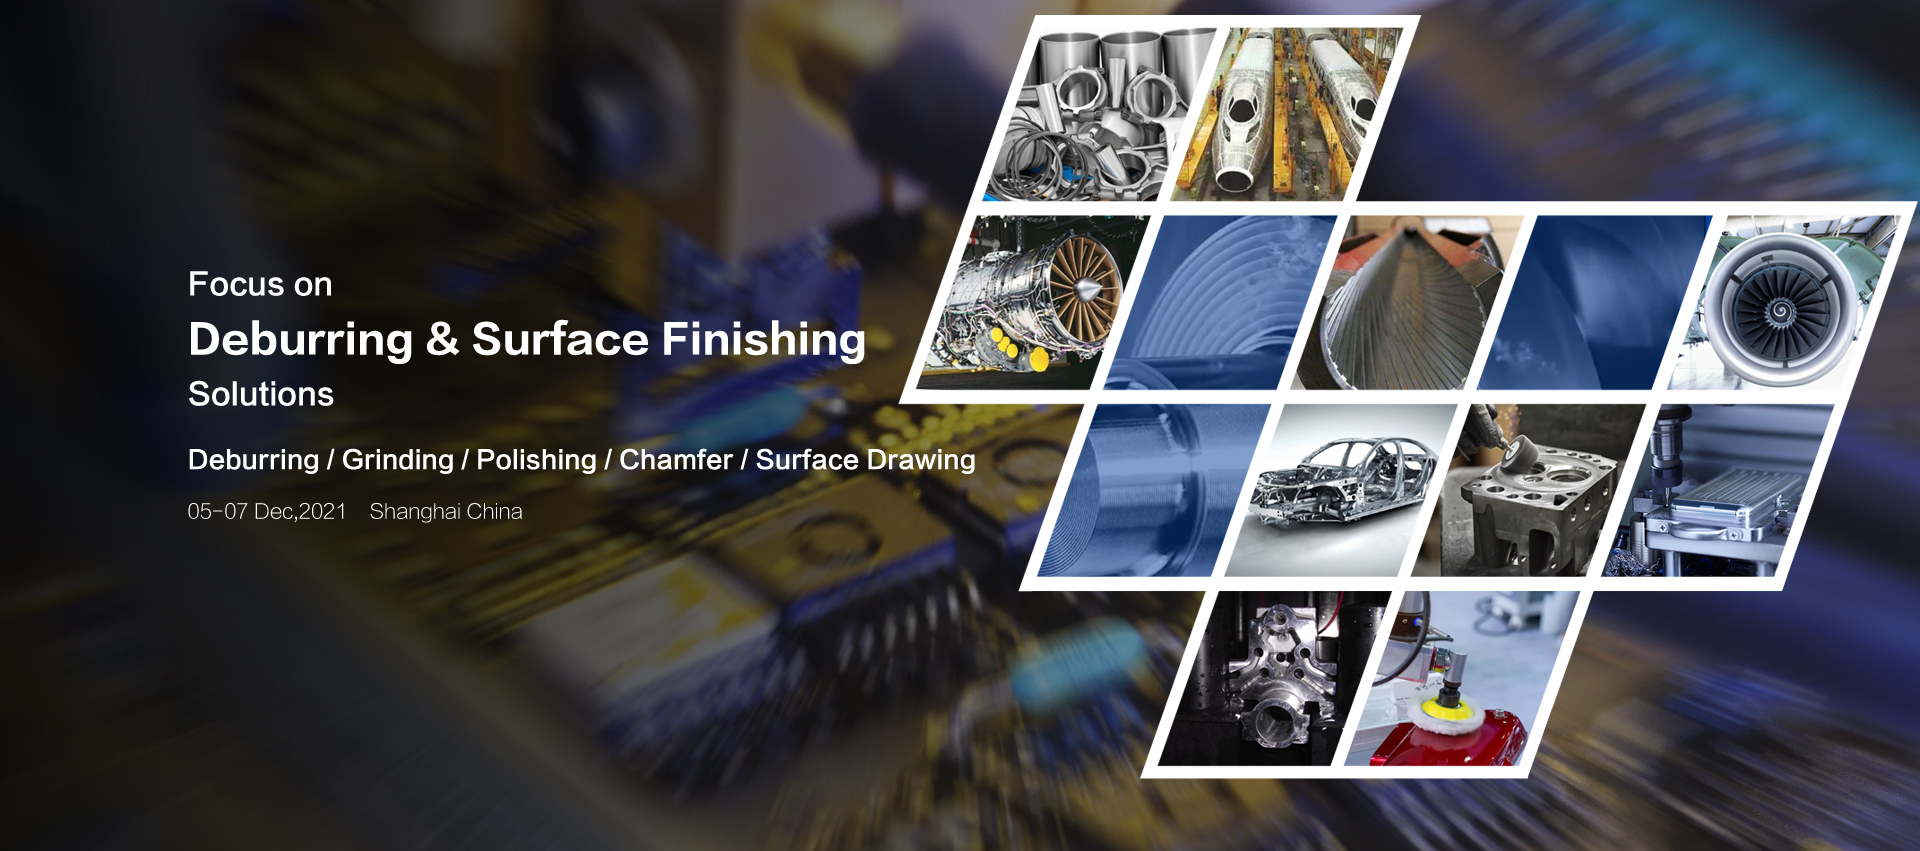 Focus on Deburring & Surface Finishing Solutions